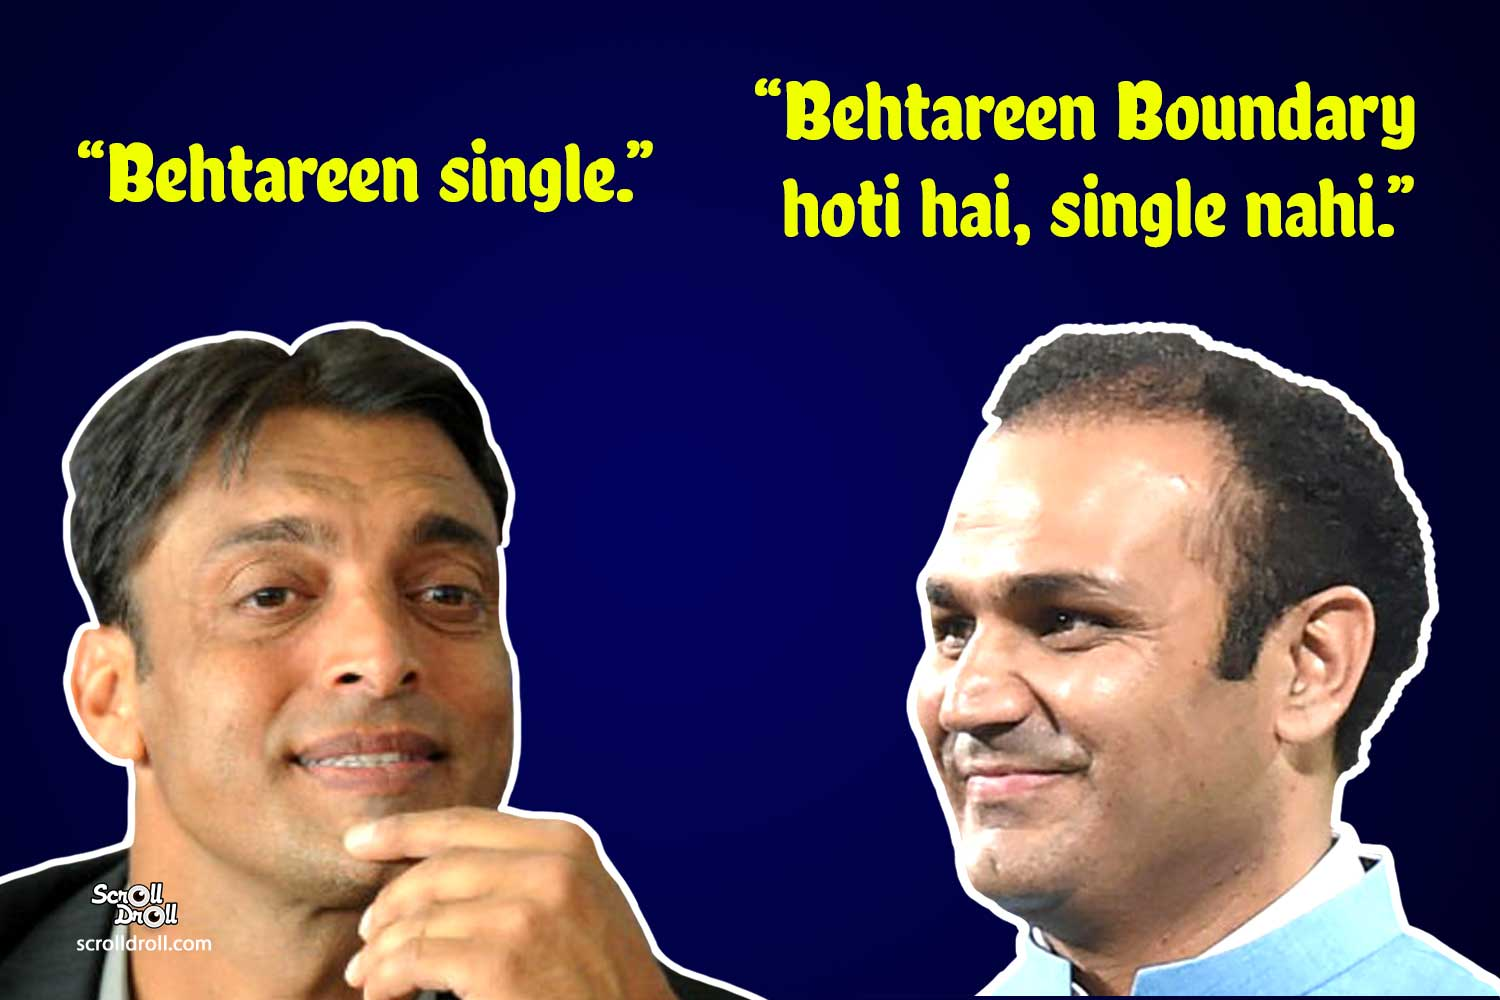 Sehwag commentary